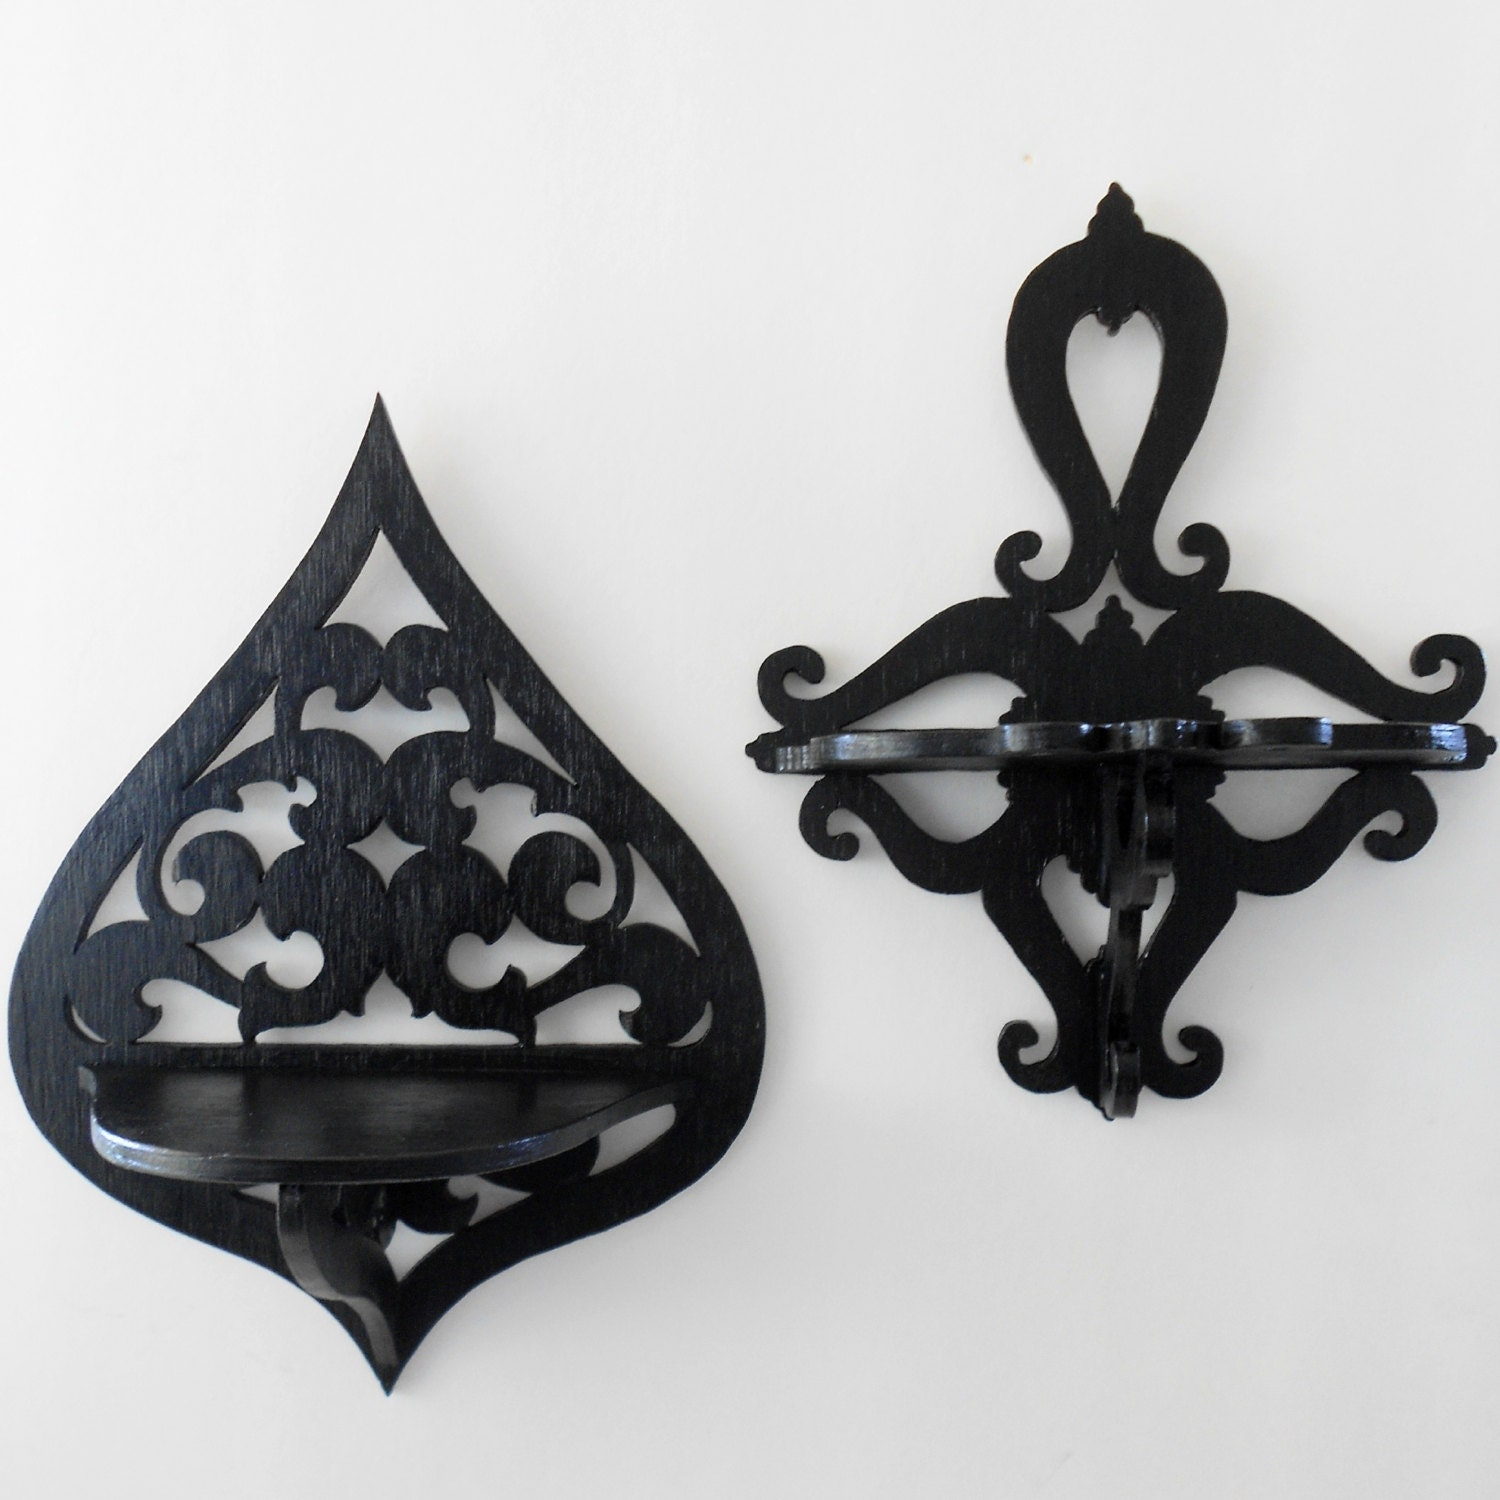 Wall Shelf Home Decor : Gothic home decor wall shelf sconce decorative